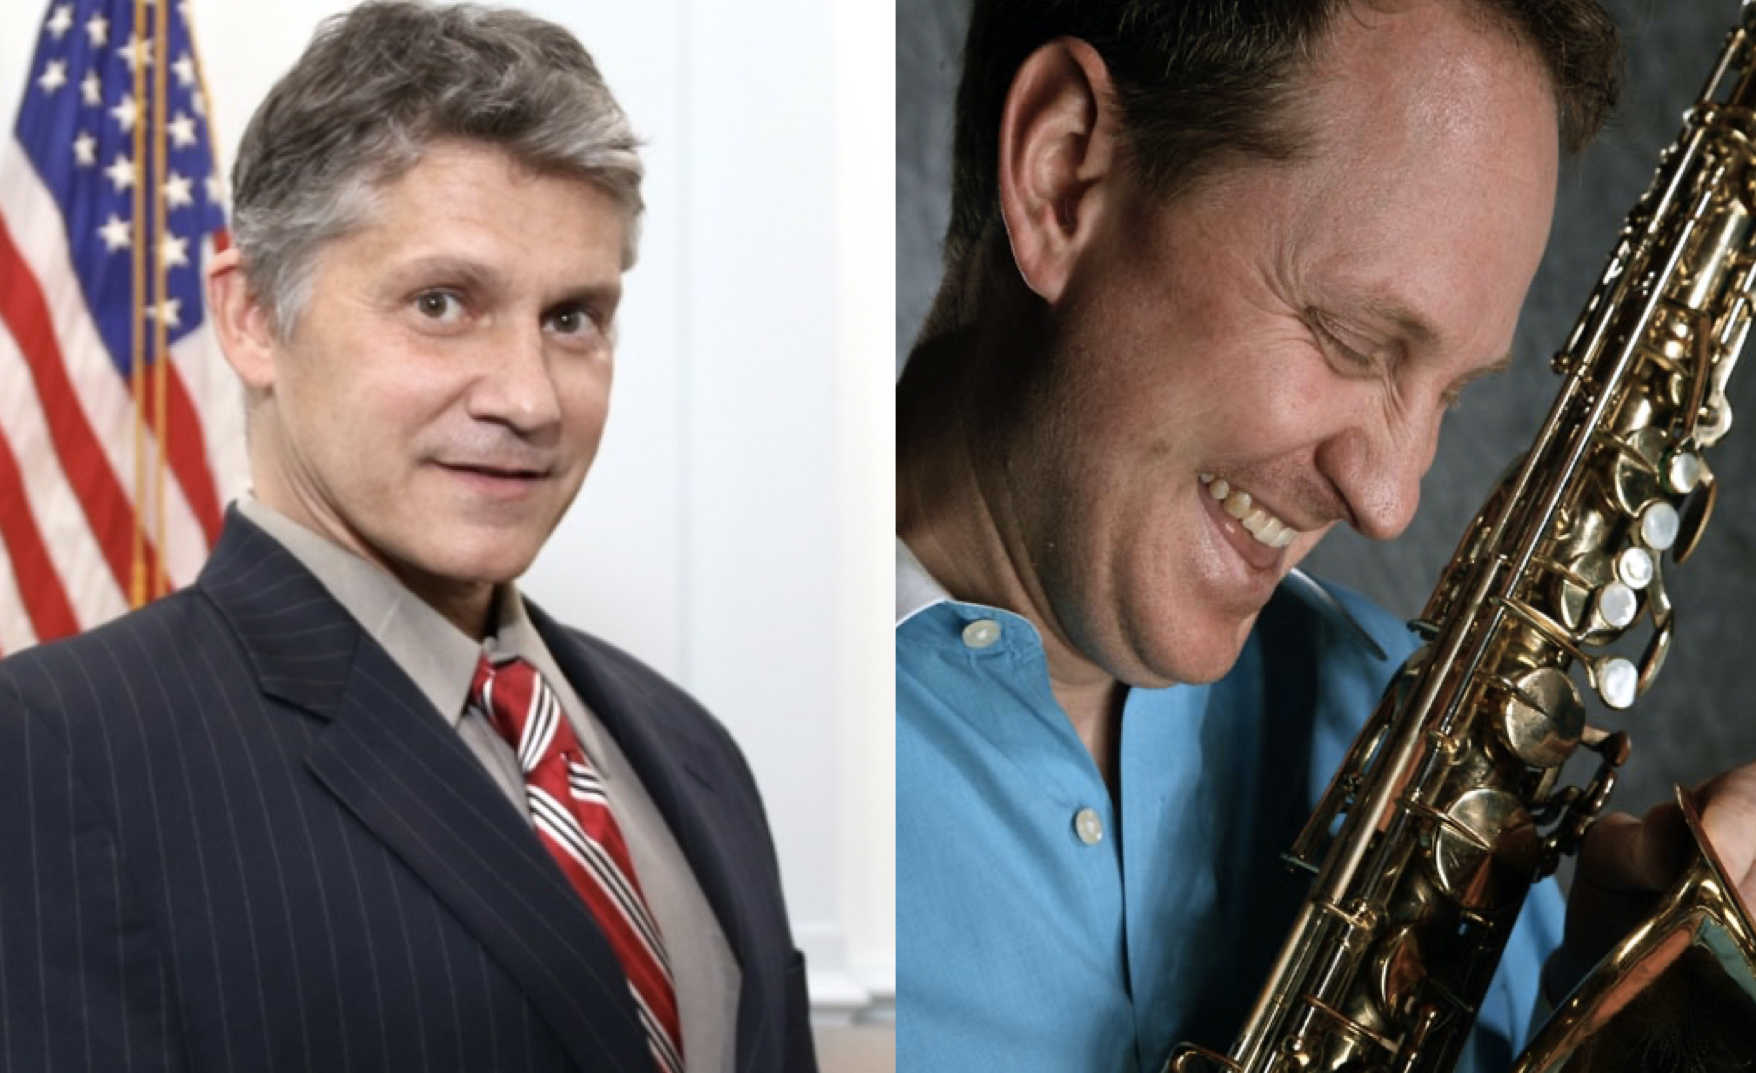 Combined image of Scott J. Graves on the left, American flag in the background and Scott M. Graves with saxophone in hand on the right.